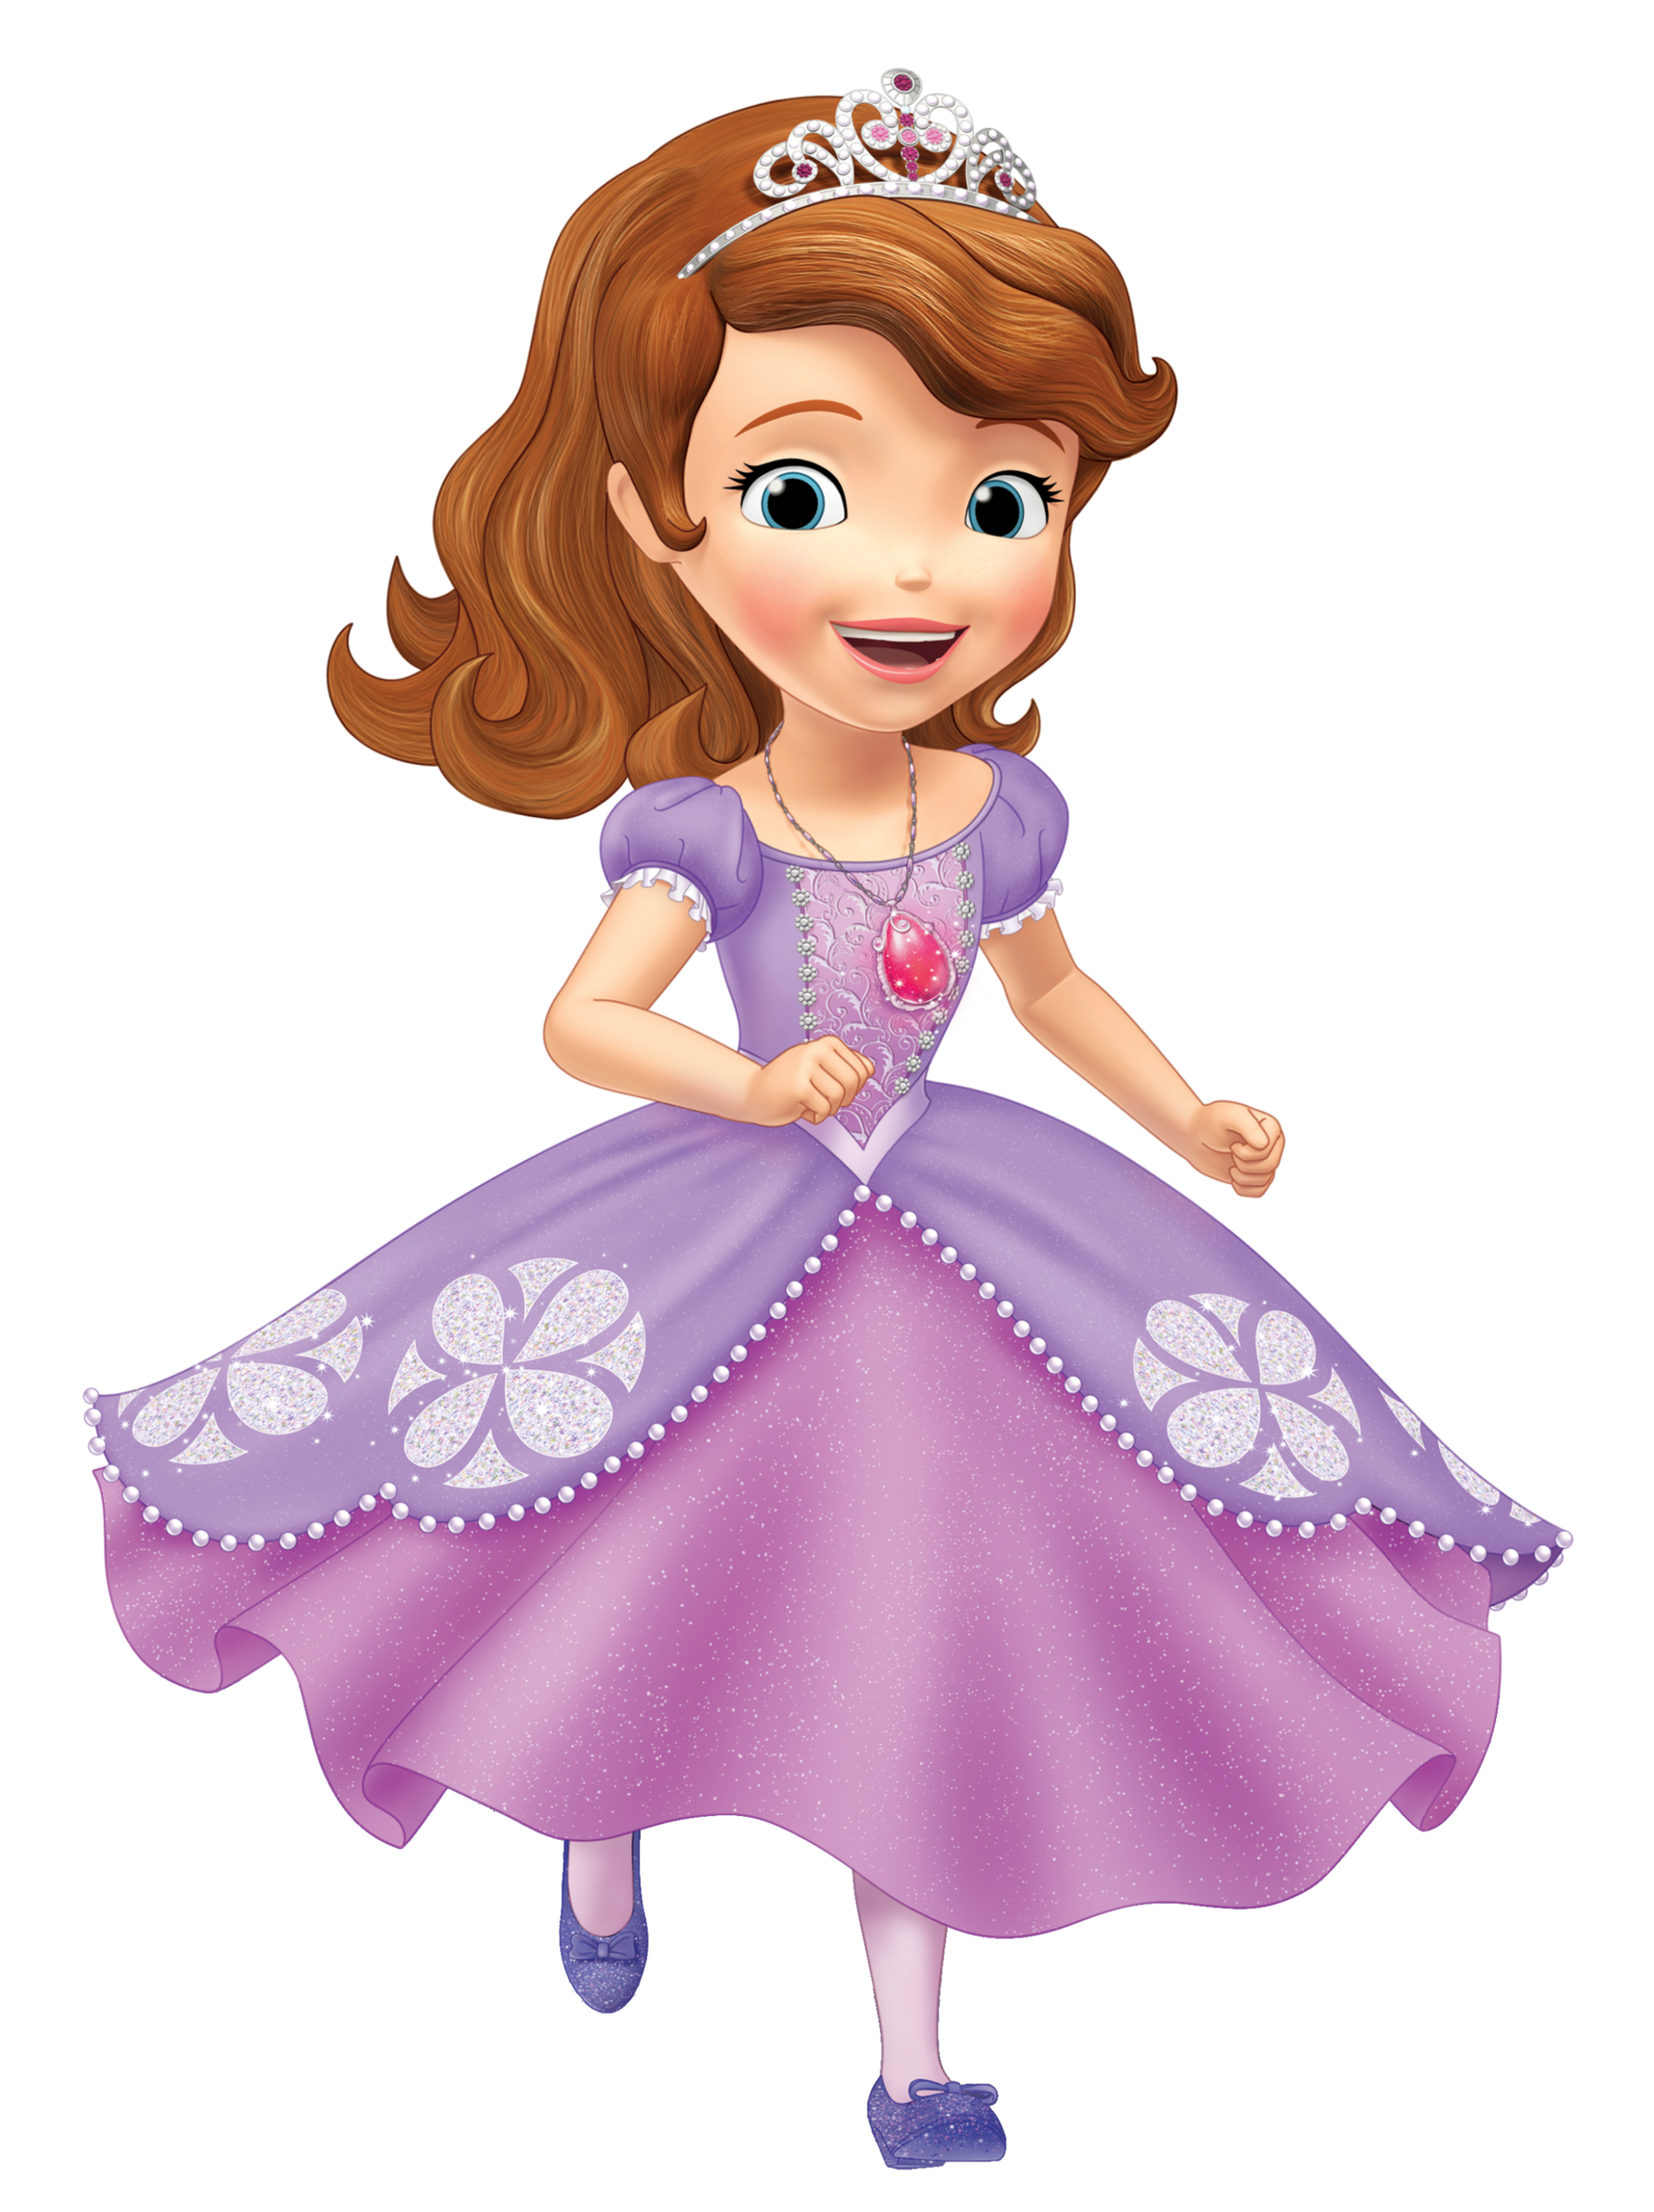 Assured, disney princess sofia the first has